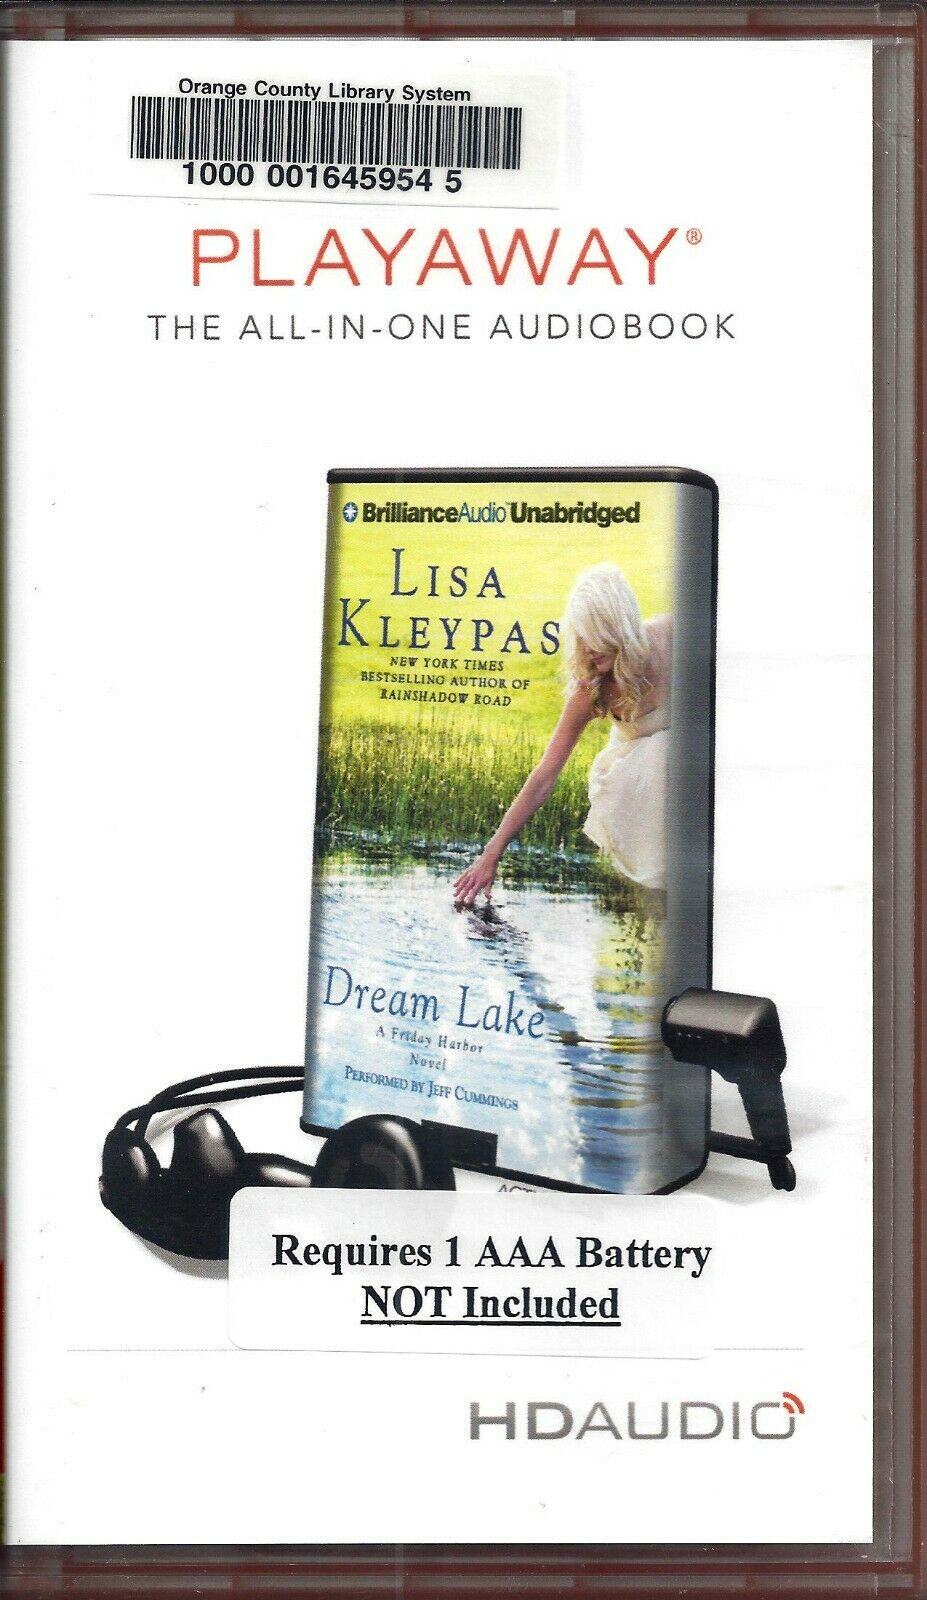 Libros De Lisa Kleypas Dream Lake By Lisa Kleypas Read By Jeff Cummings Unabridged Playaway Audio Book